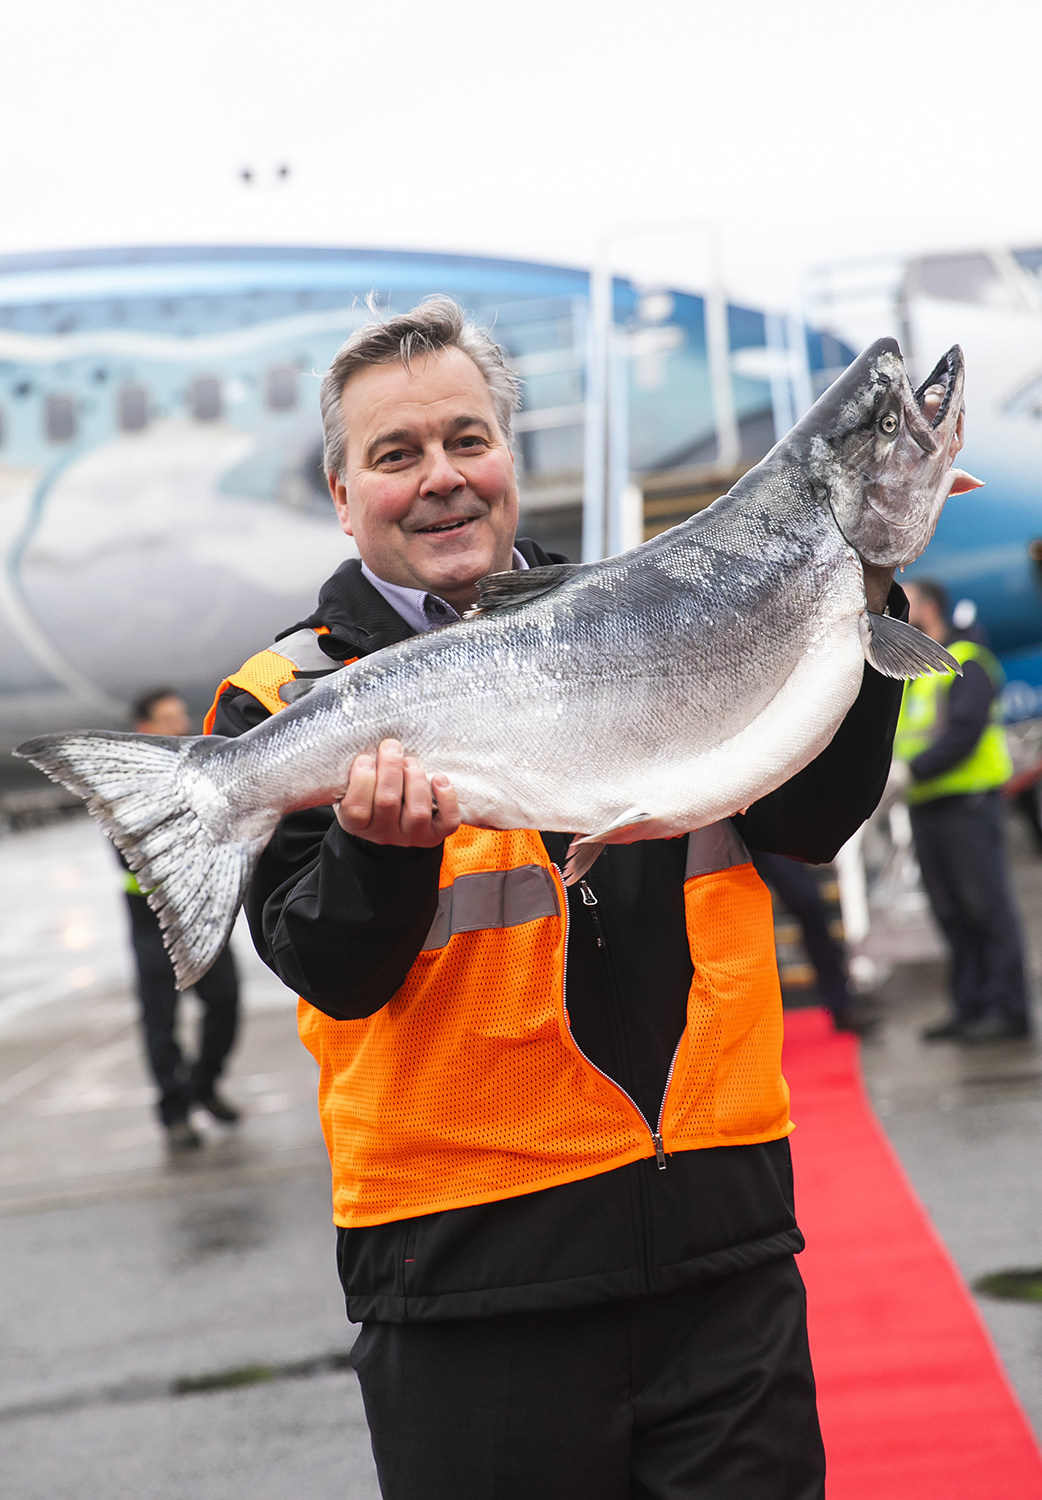 Alaska Air Cargo brings the season's first wild Copper River